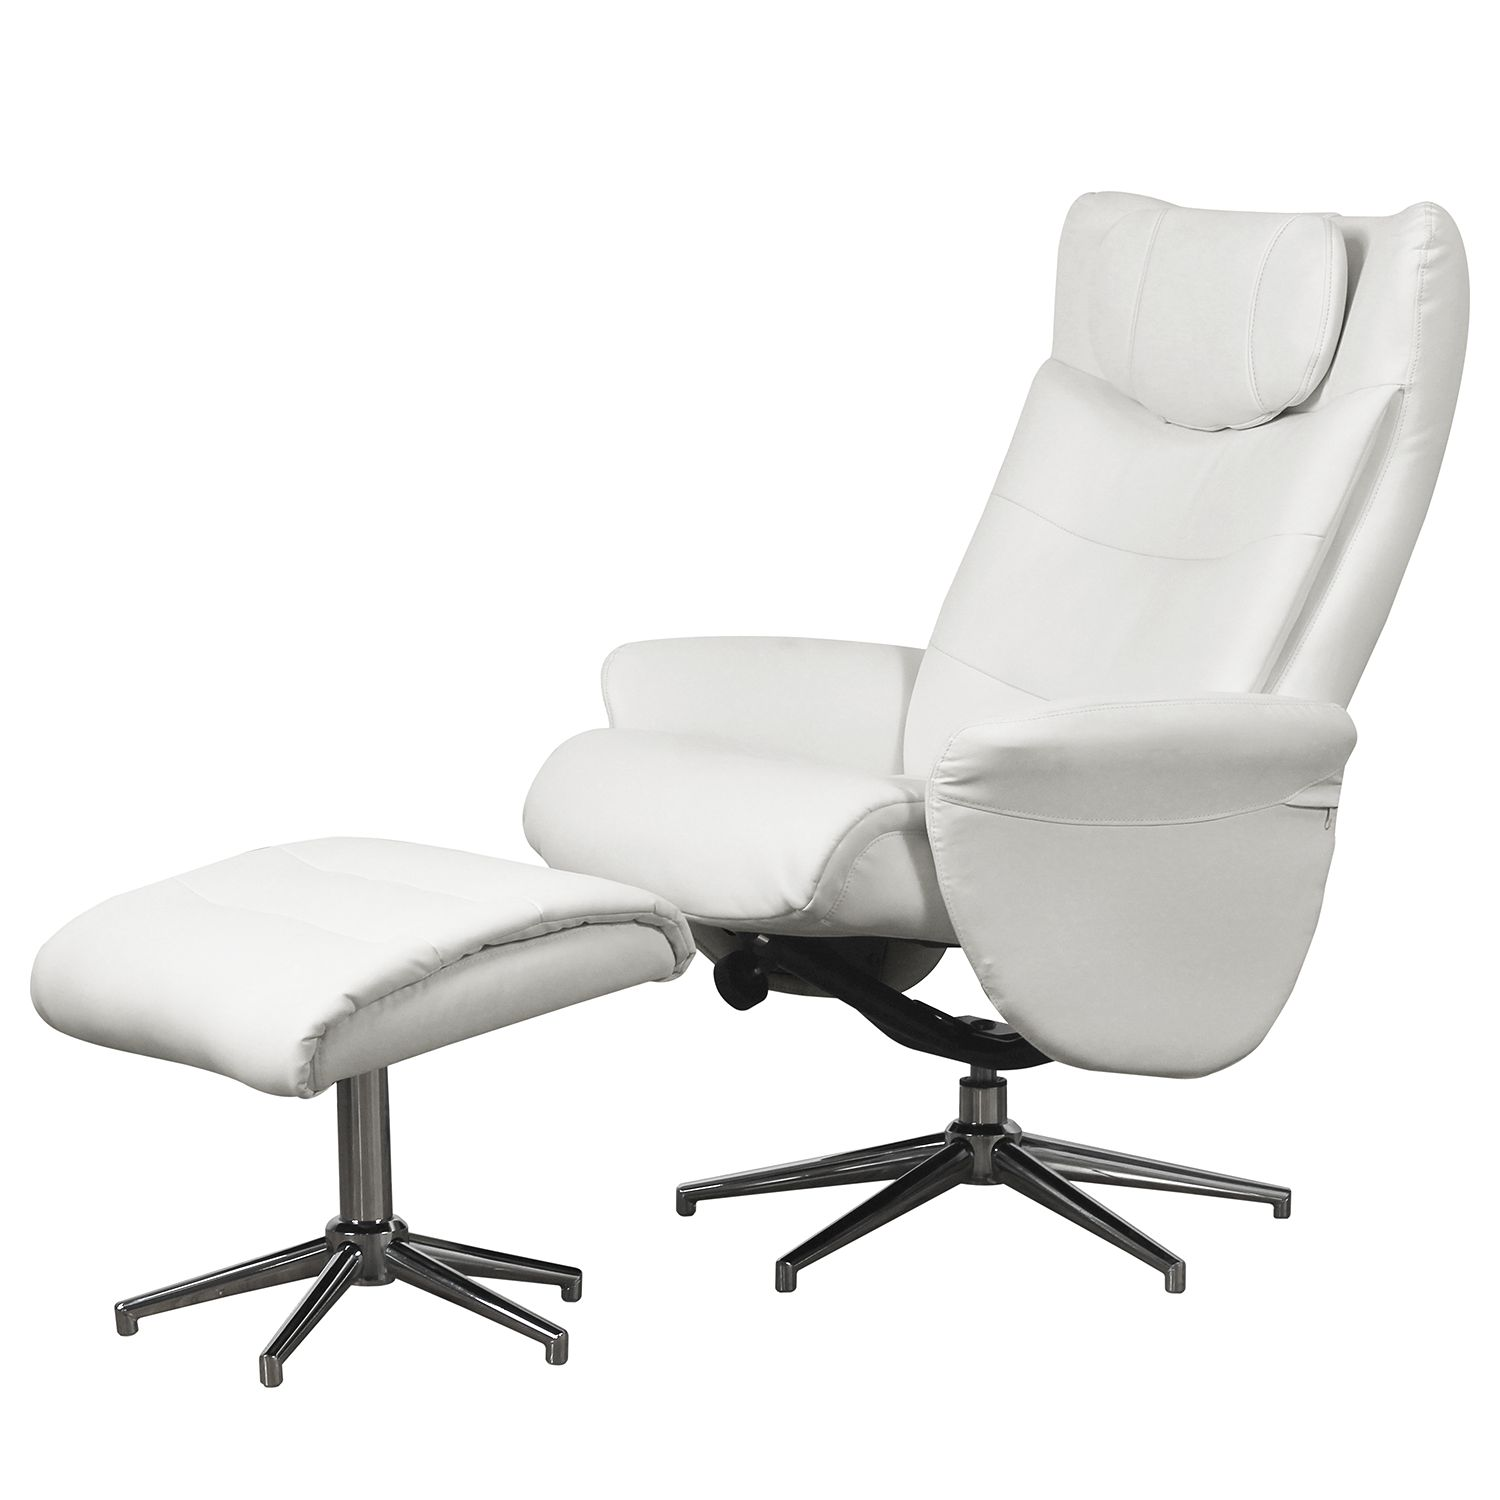 Fauteuil relax Colesberg